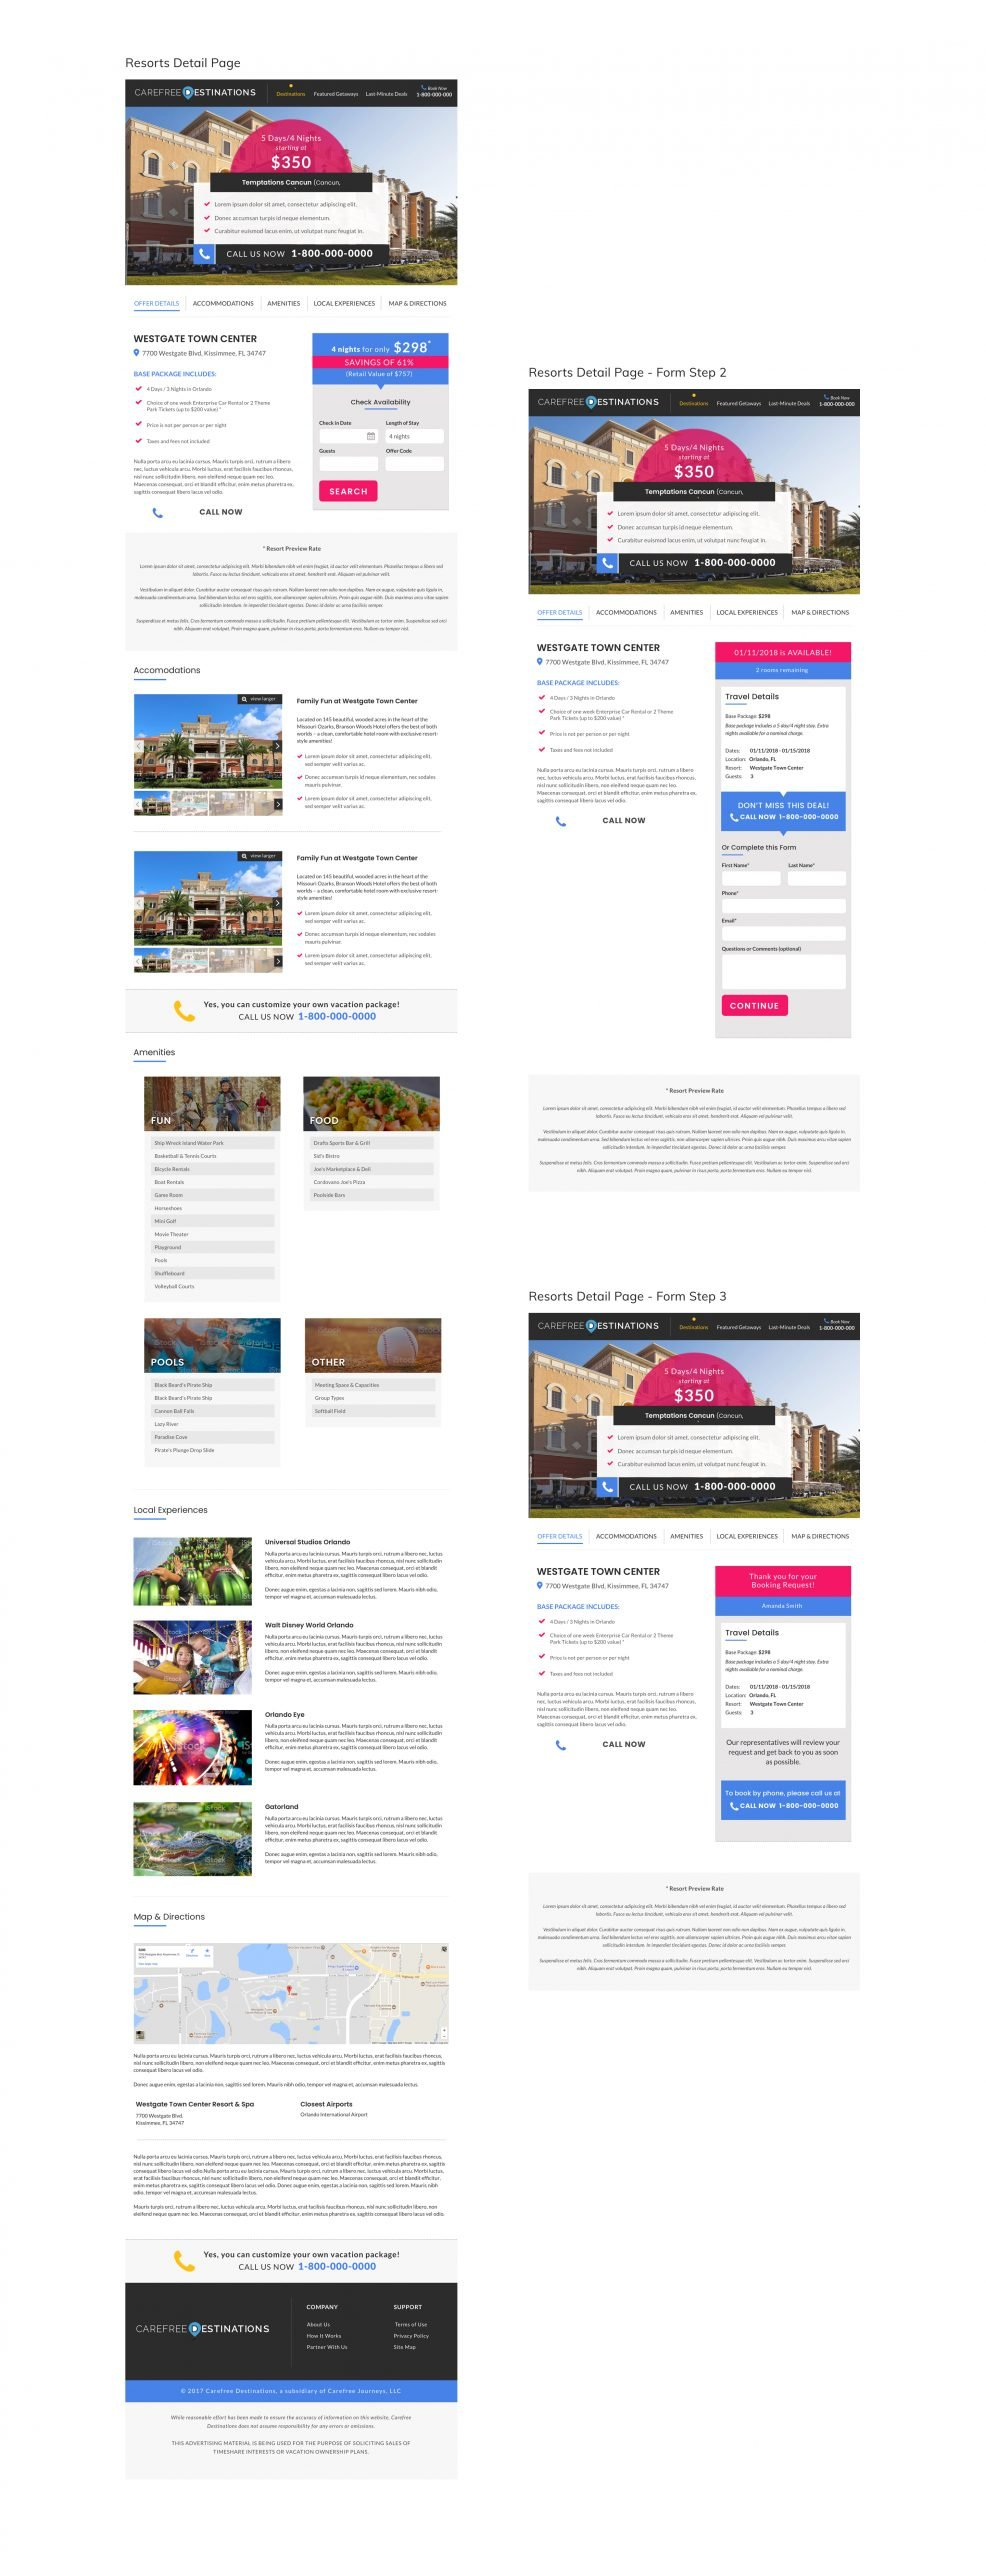 Carefree Destinations Booking Forms